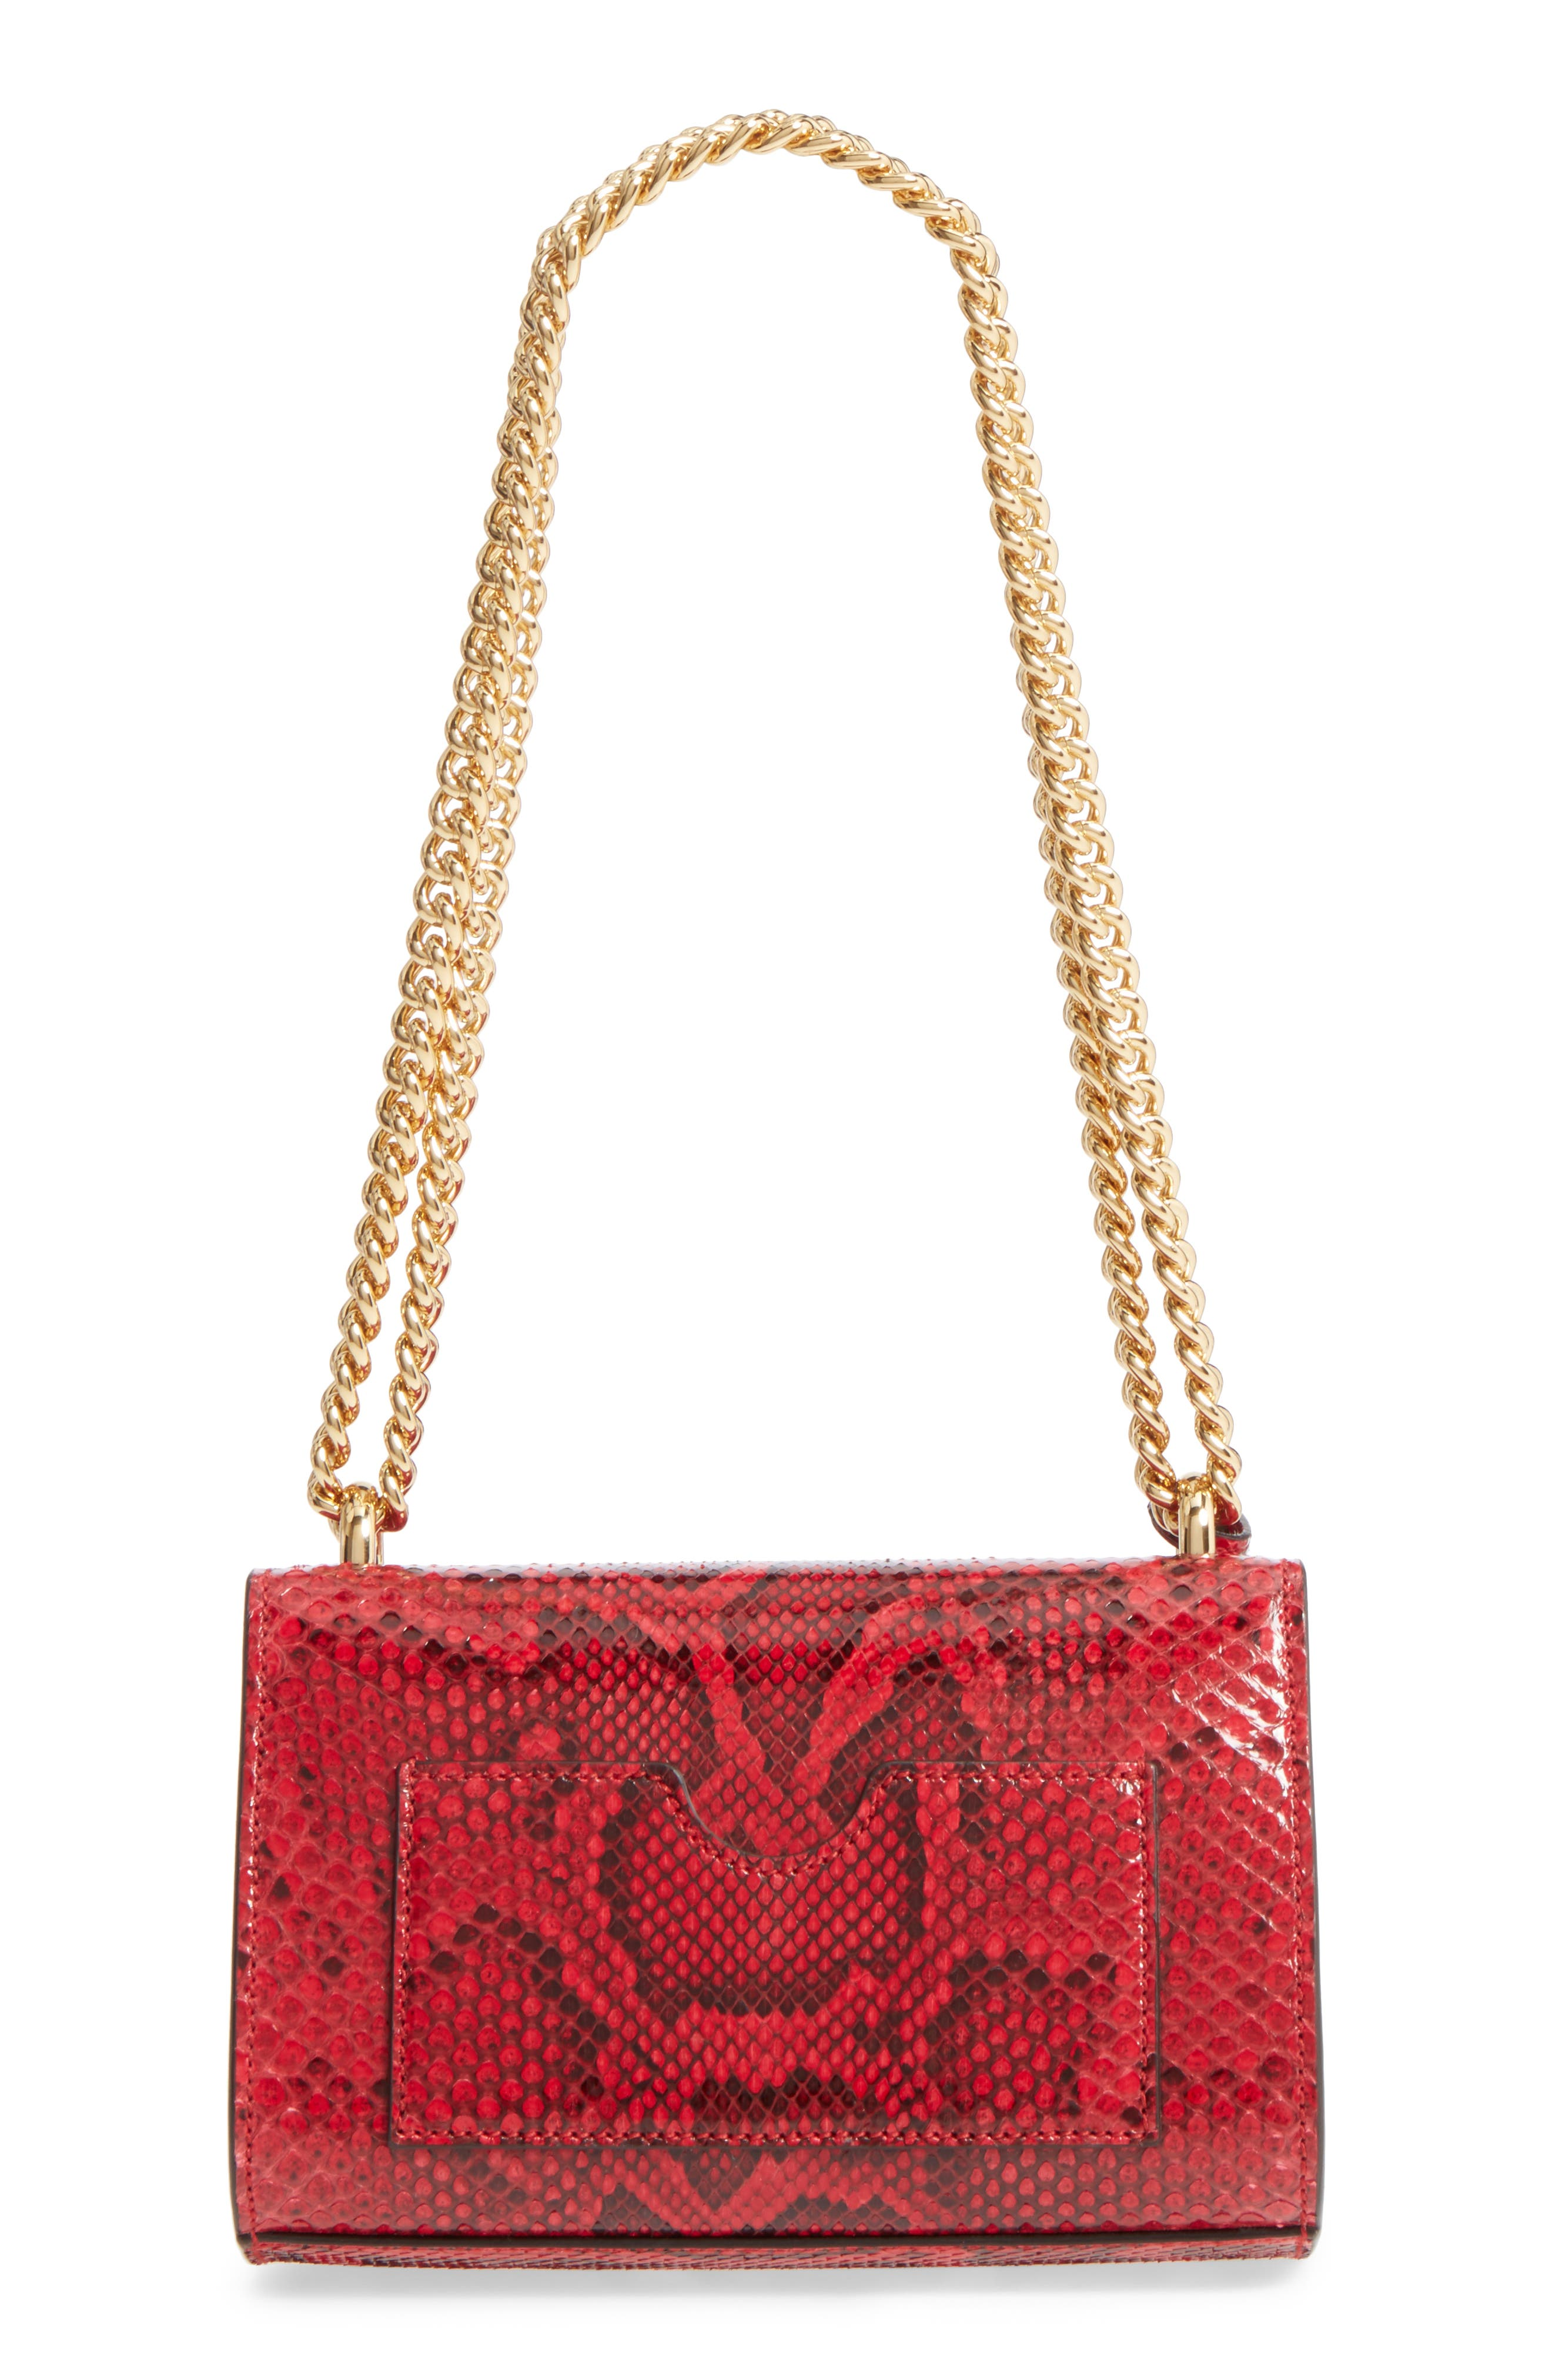 Small Padlock - Genuine Python Shoulder Bag,                             Alternate thumbnail 3, color,                             HIBISCUS RED